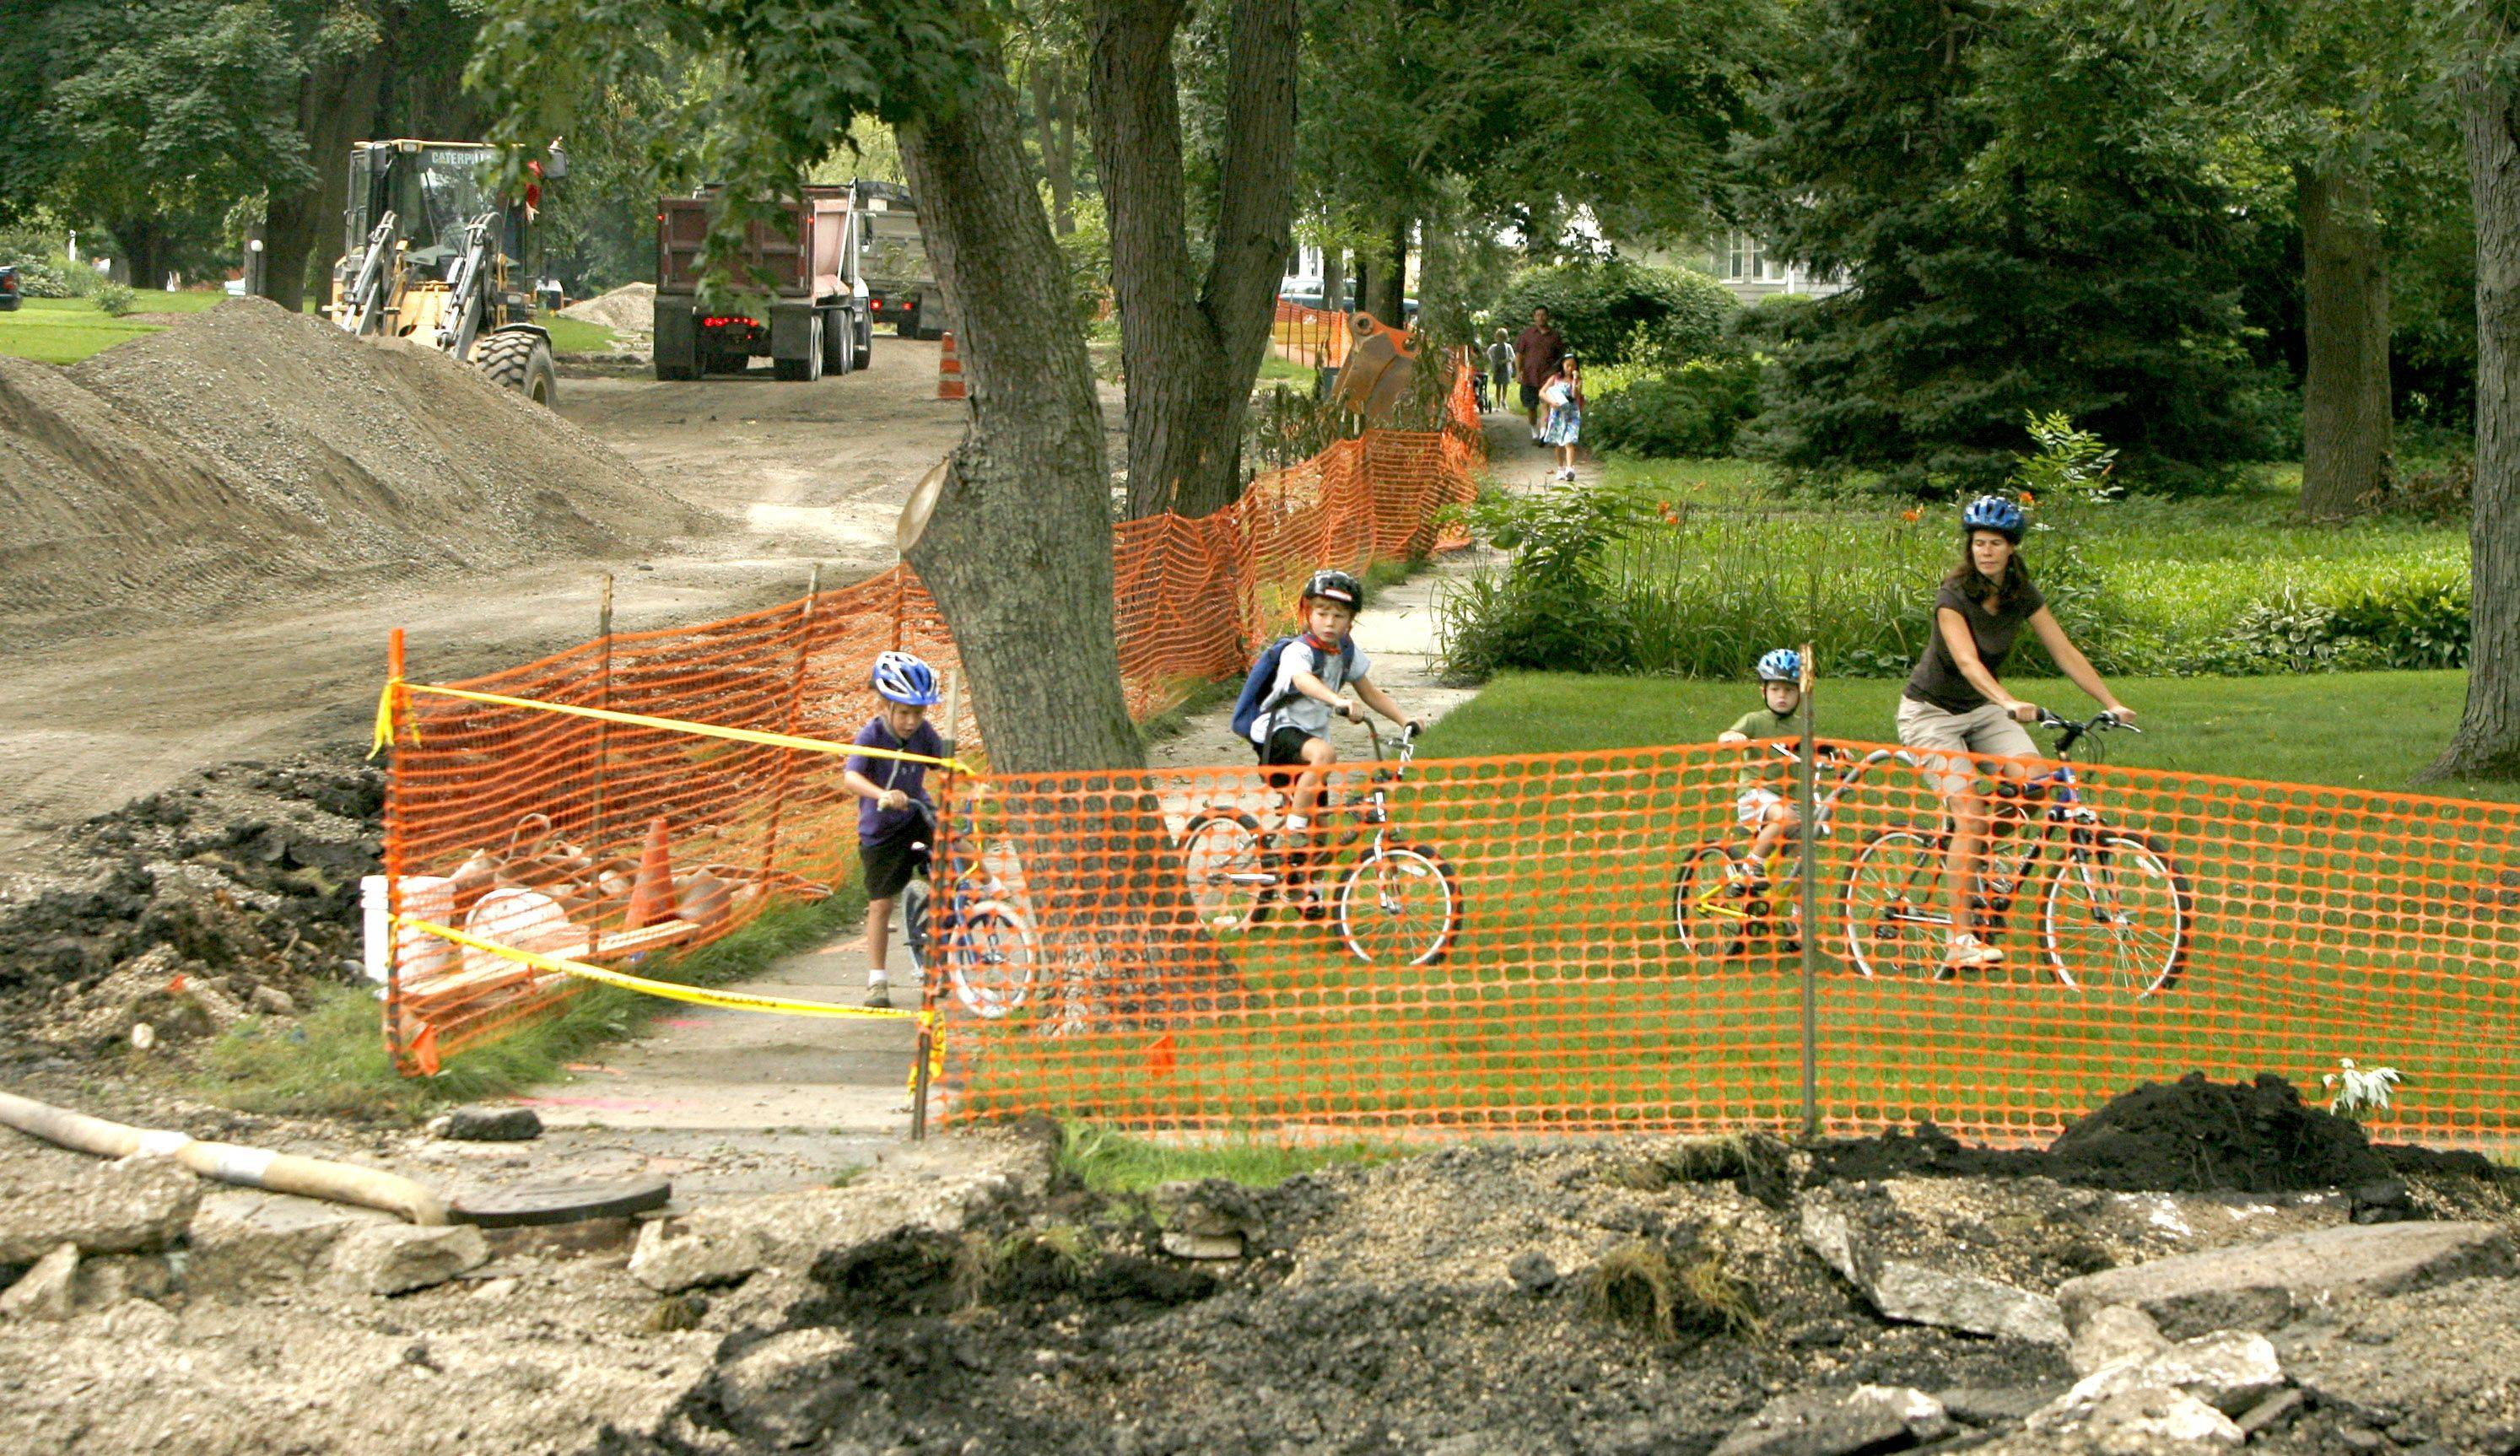 Students ride around construction fences for the first day of school at Whittier Elementary School in Wheaton.